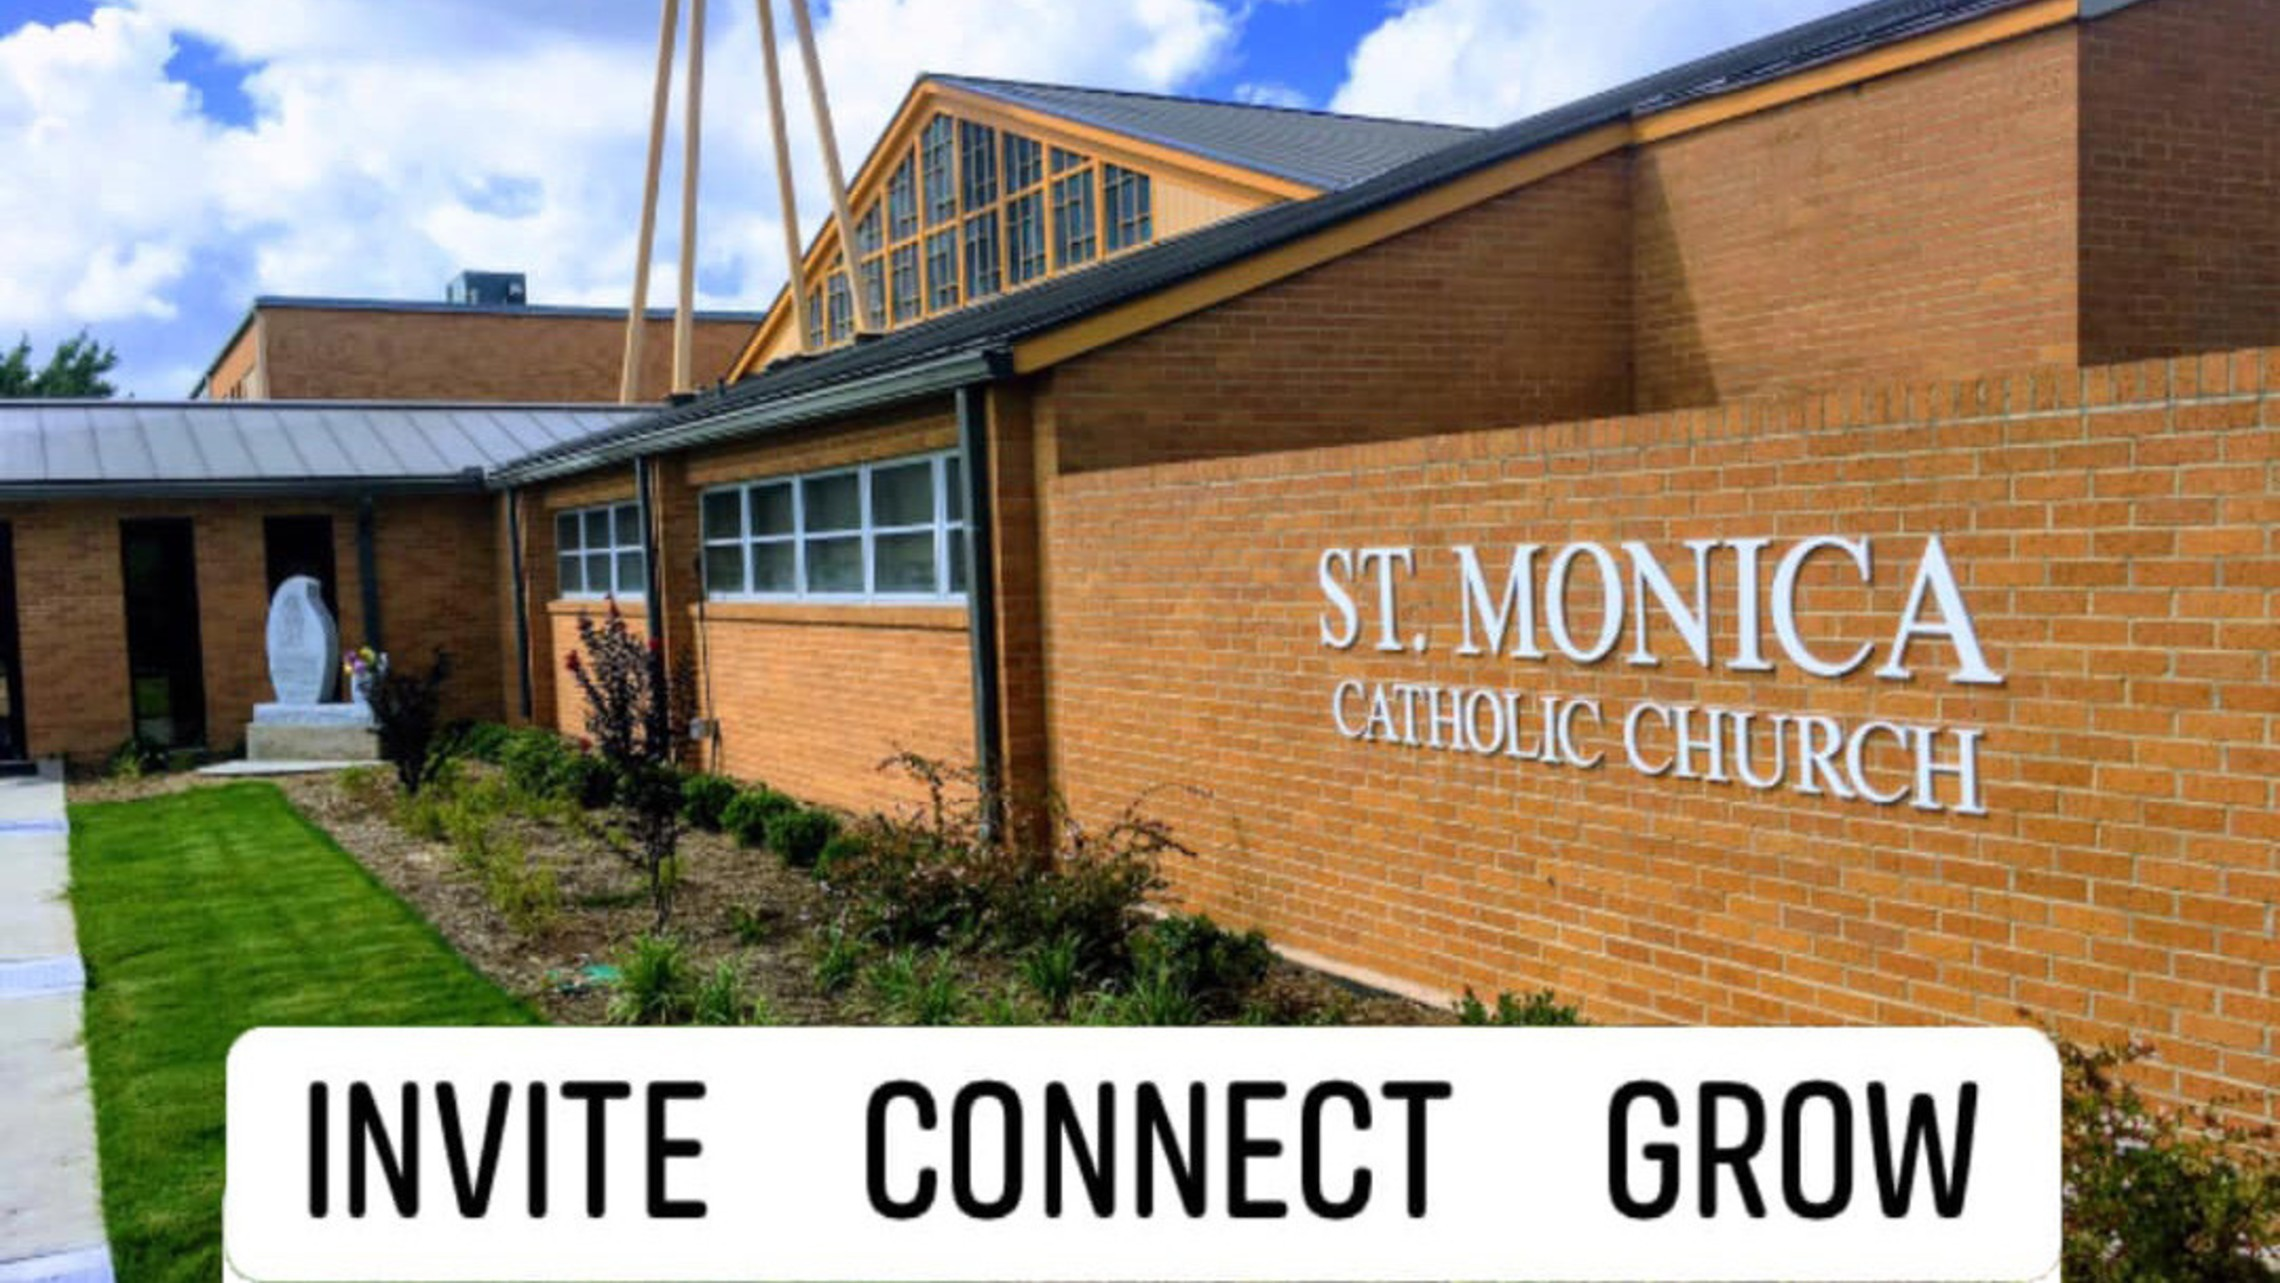 St Monica Id Sign Icg3